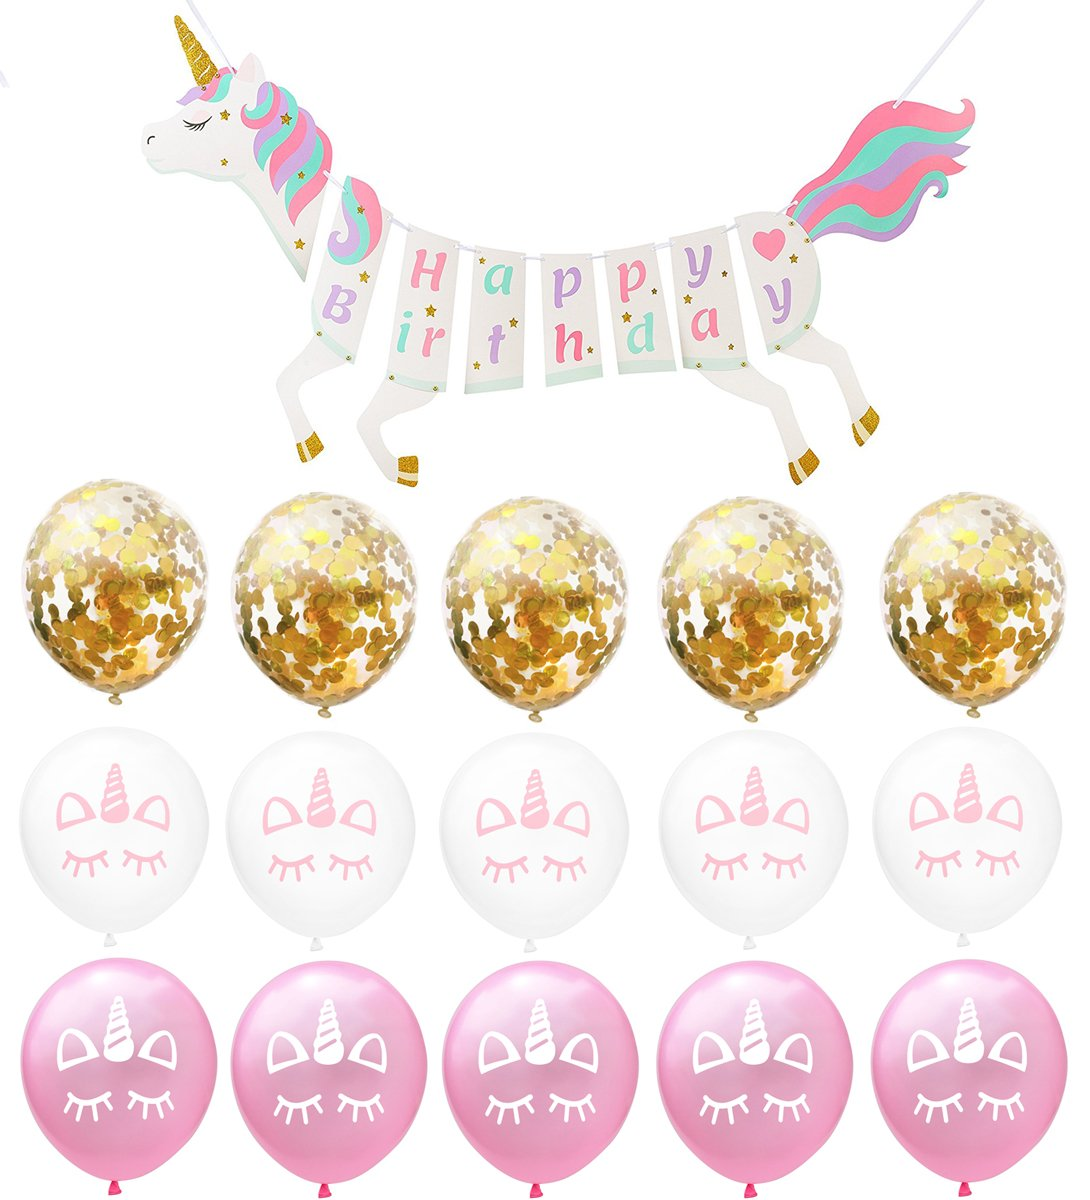 Regilt Unicorn Party Supplies Decorations Set - Unicorn Happy Birthday Banner Balloons - Clear balloons with gold confetti for Girls Birthday Party